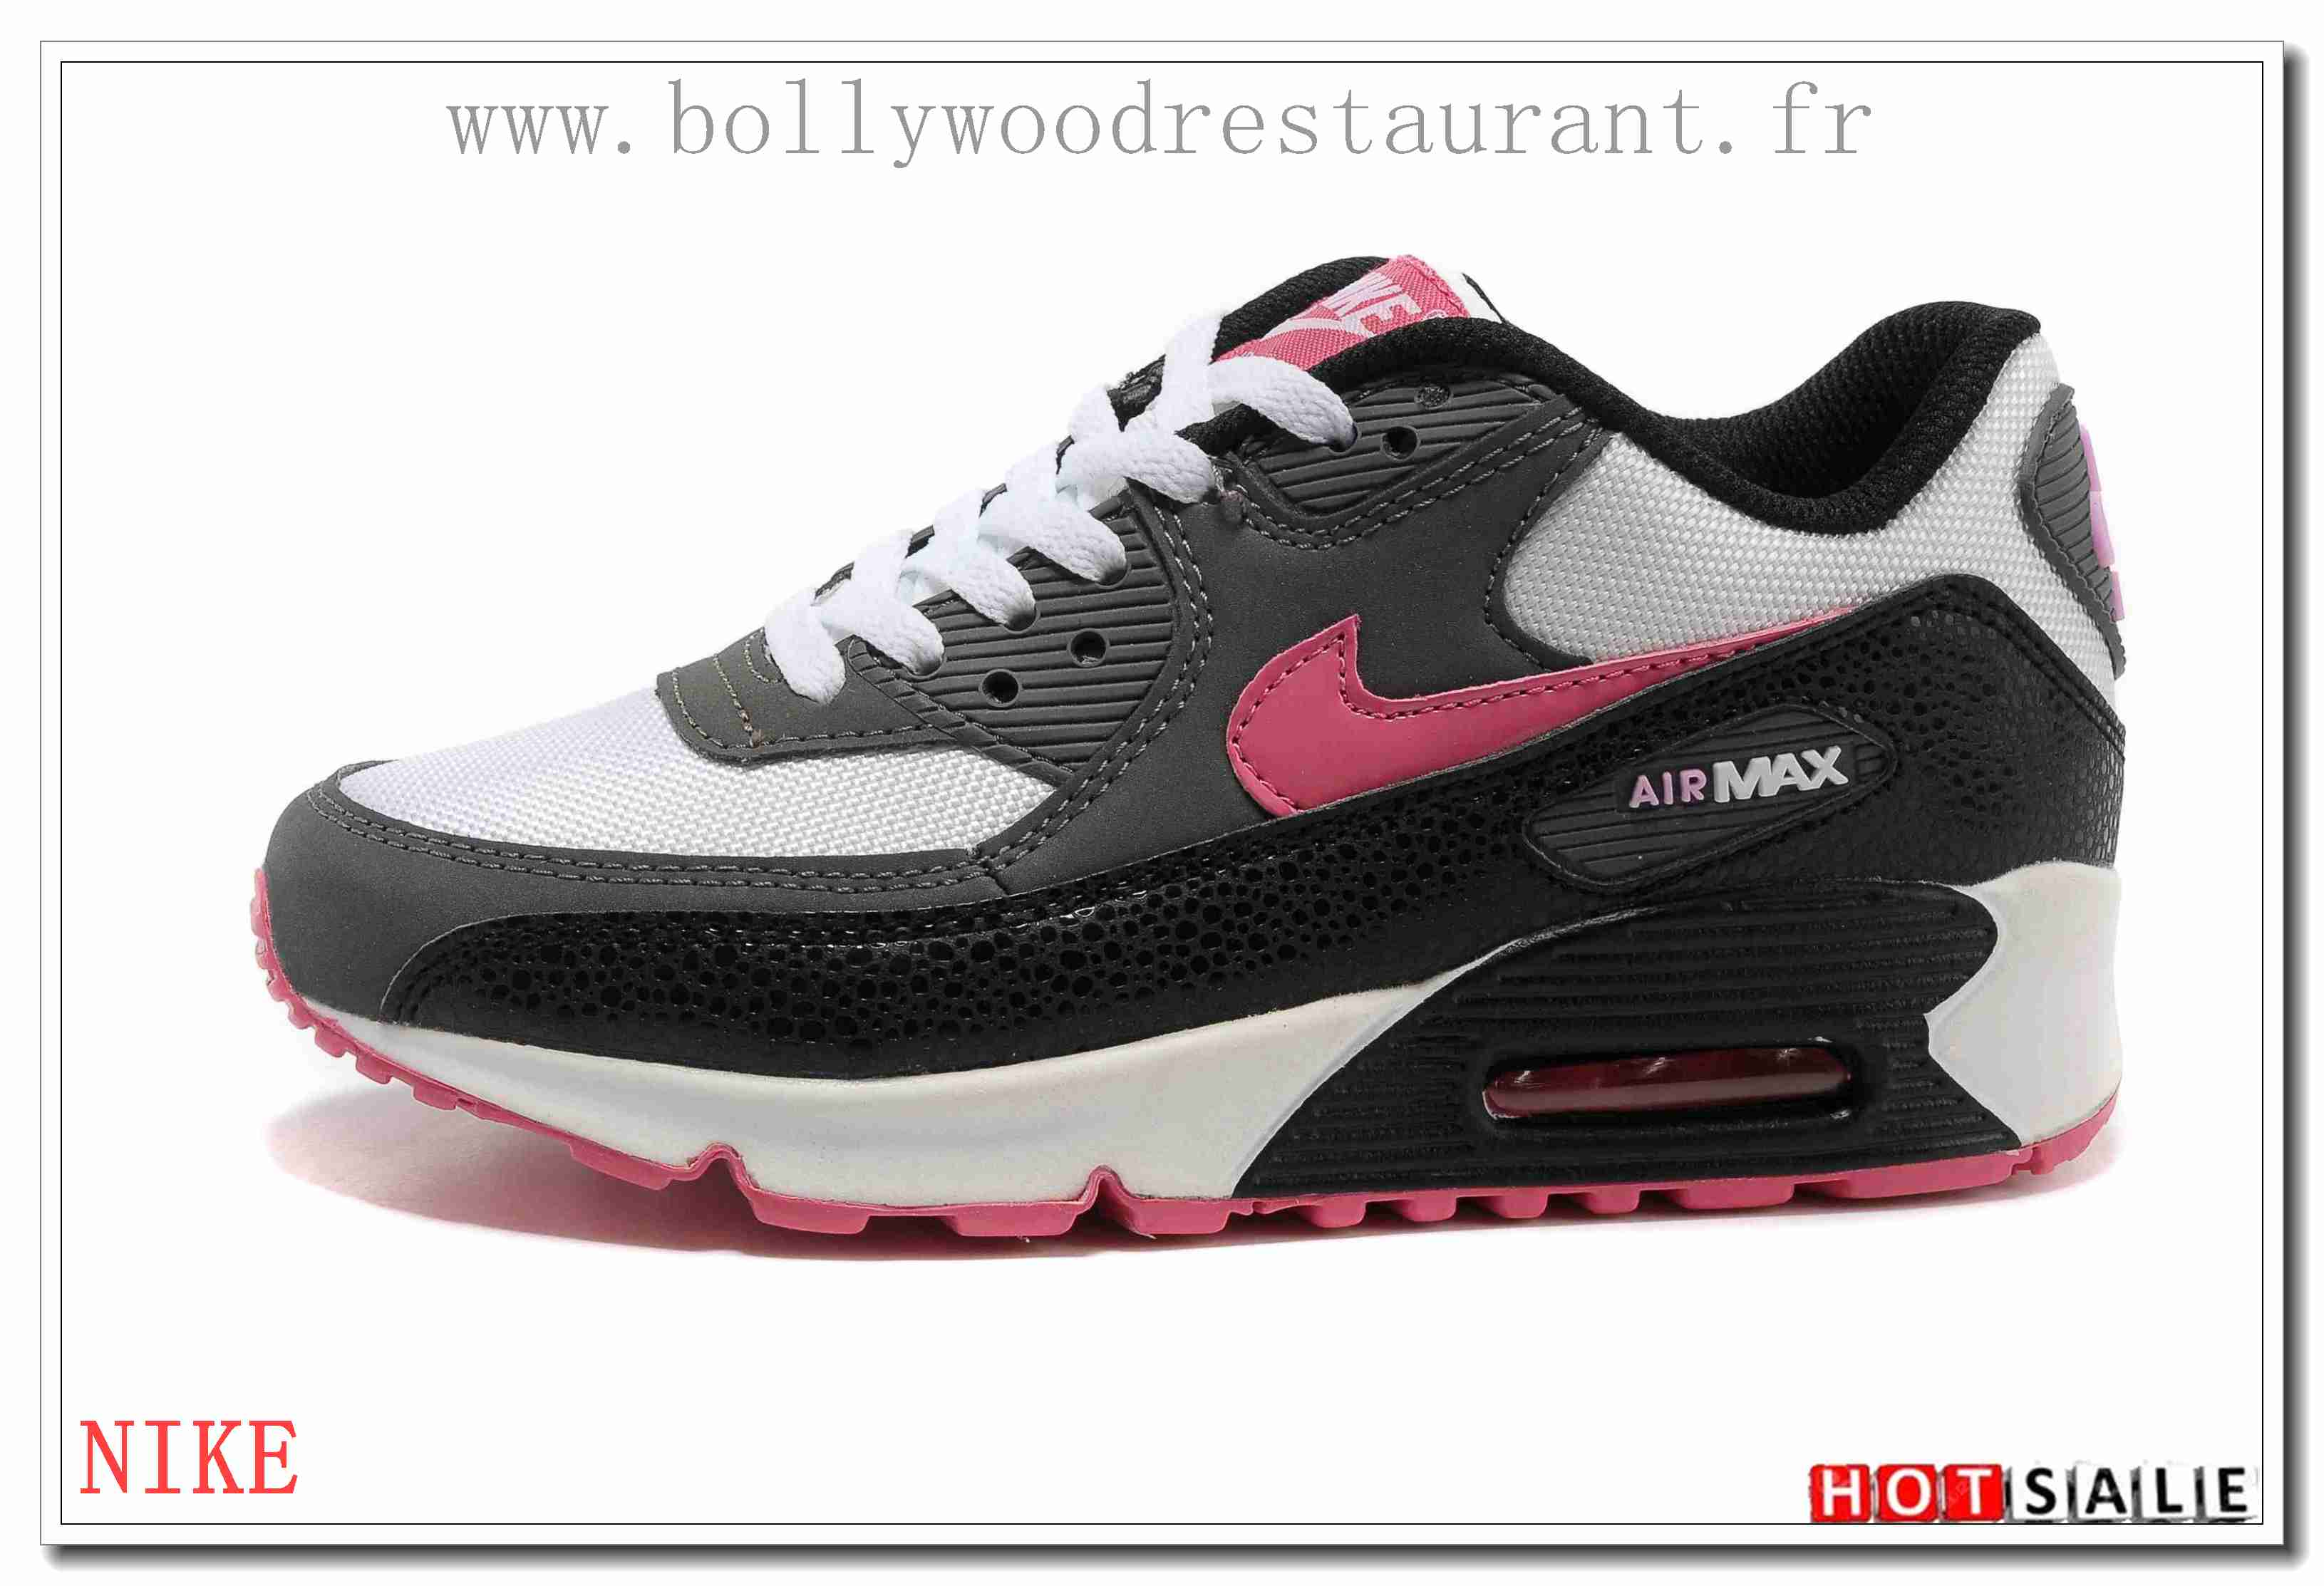 quality design 3b440 ce614 LZ4477 Moins Cher 2018 Nouveau style Nike Air Max 90 - Femme Chaussures -  Rose Promotions